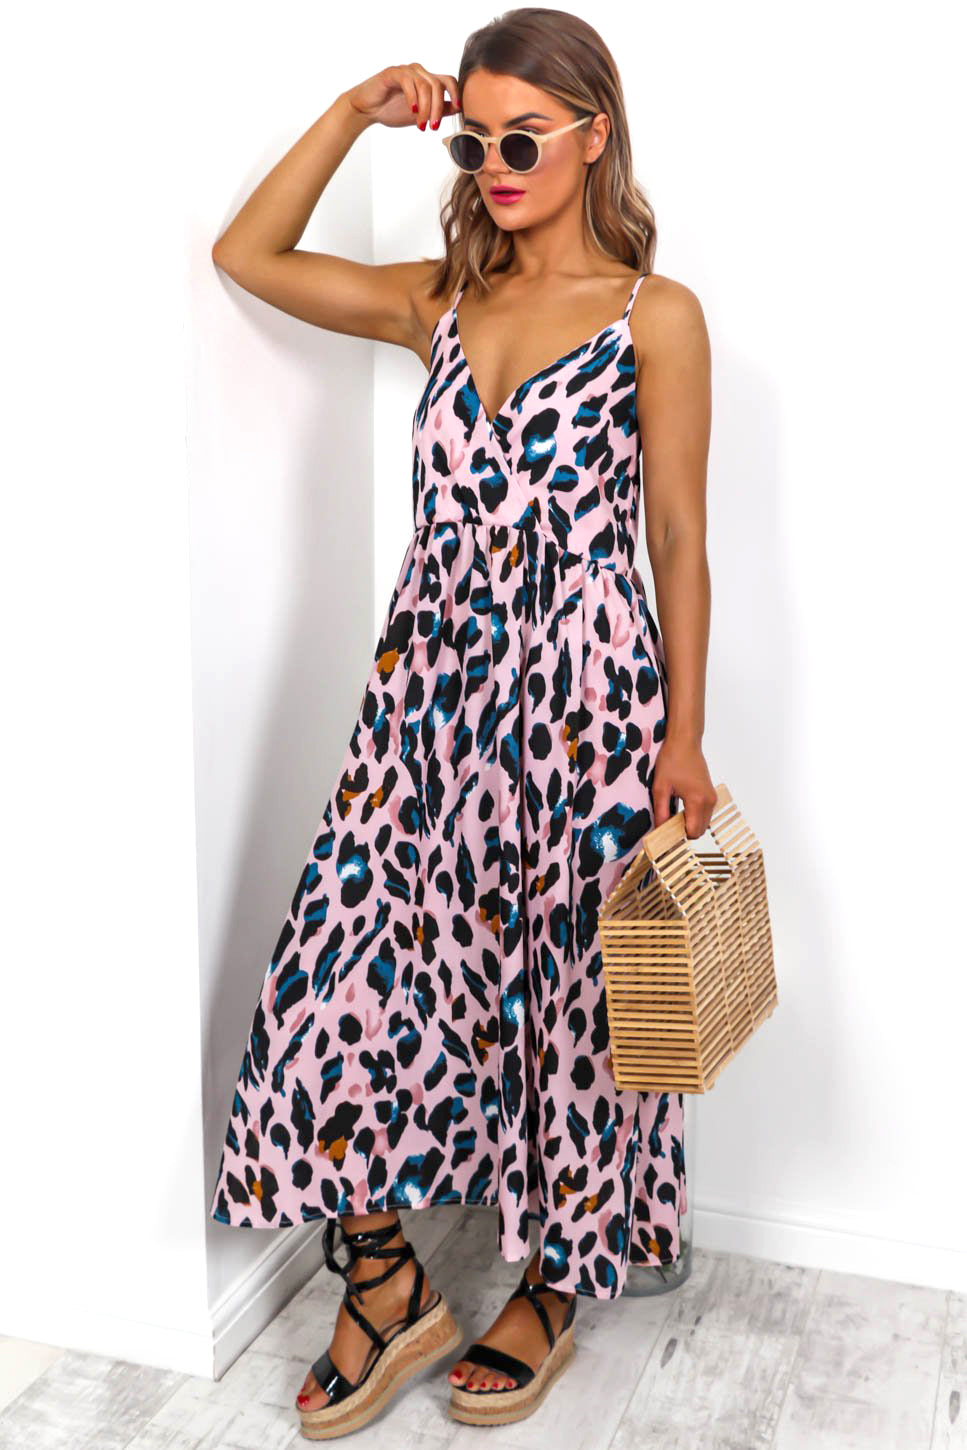 Holiday In The Sun - Pink Leopard Print Maxi Dress